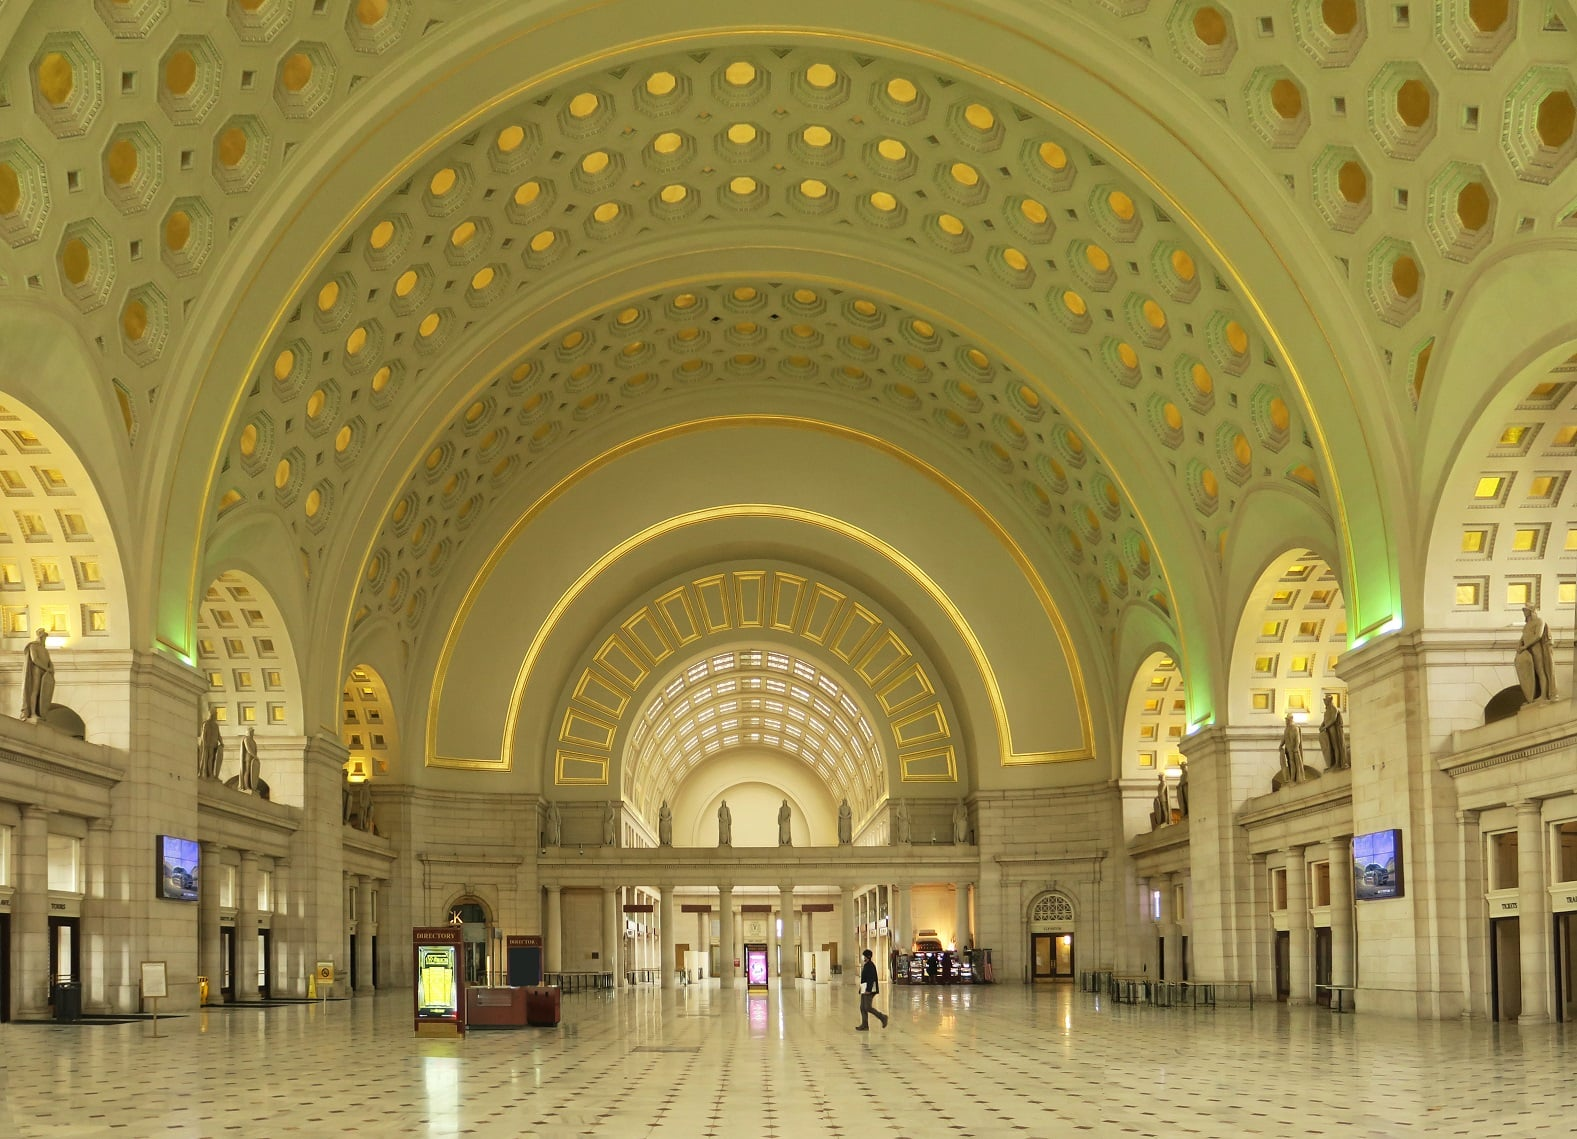 union-Station-Washington-DC-photo-by-Paul-Clemence-3-1